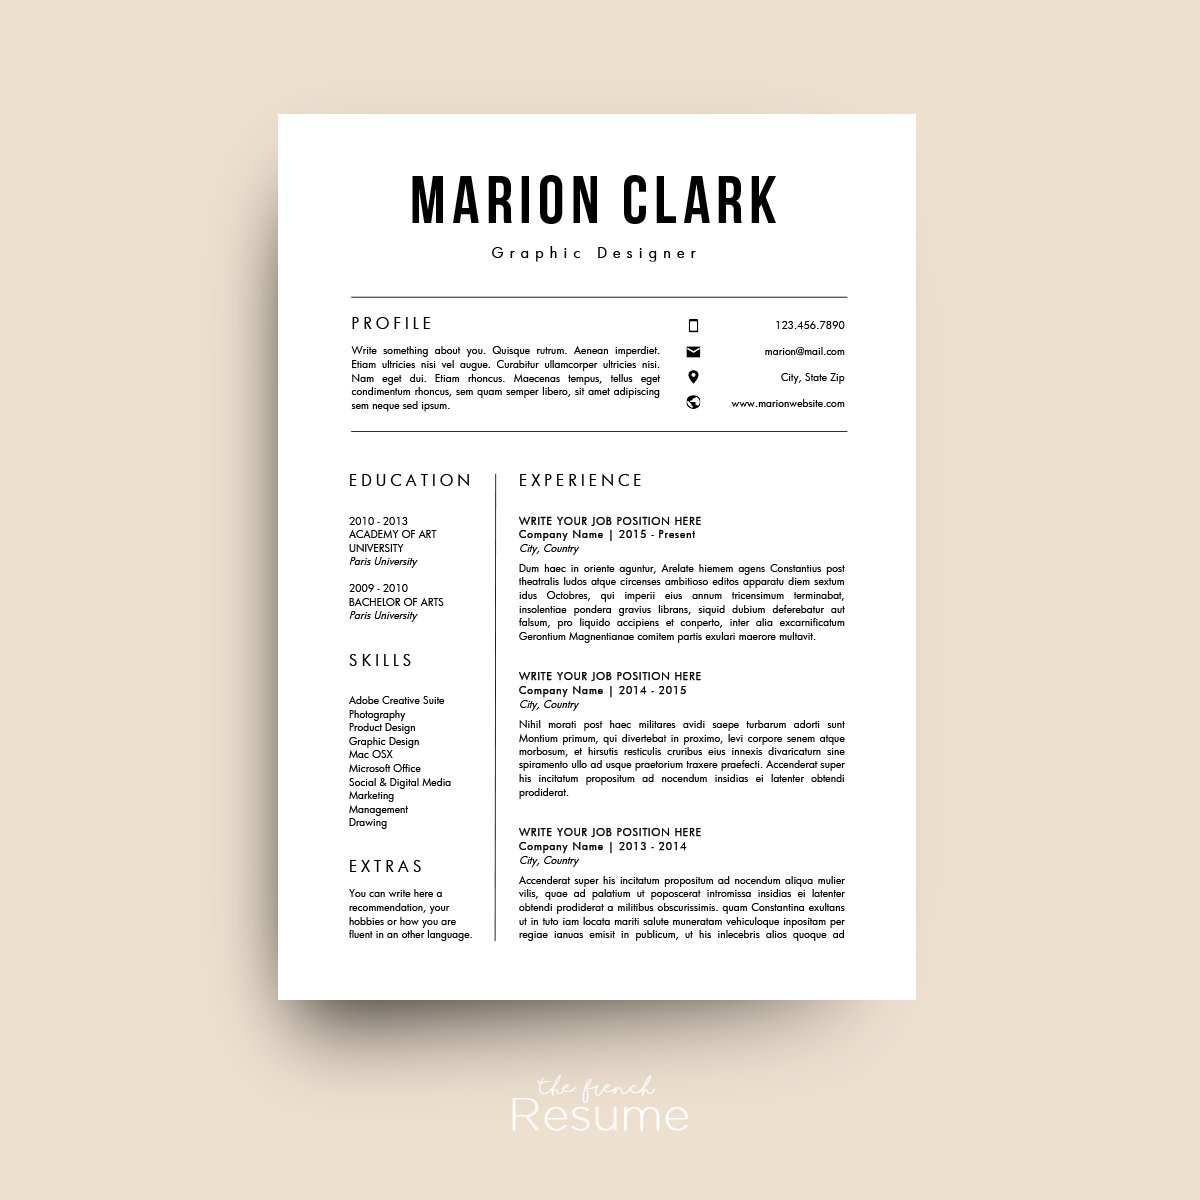 Simple Resume Template Word: Simple Resume Template (MS Word)